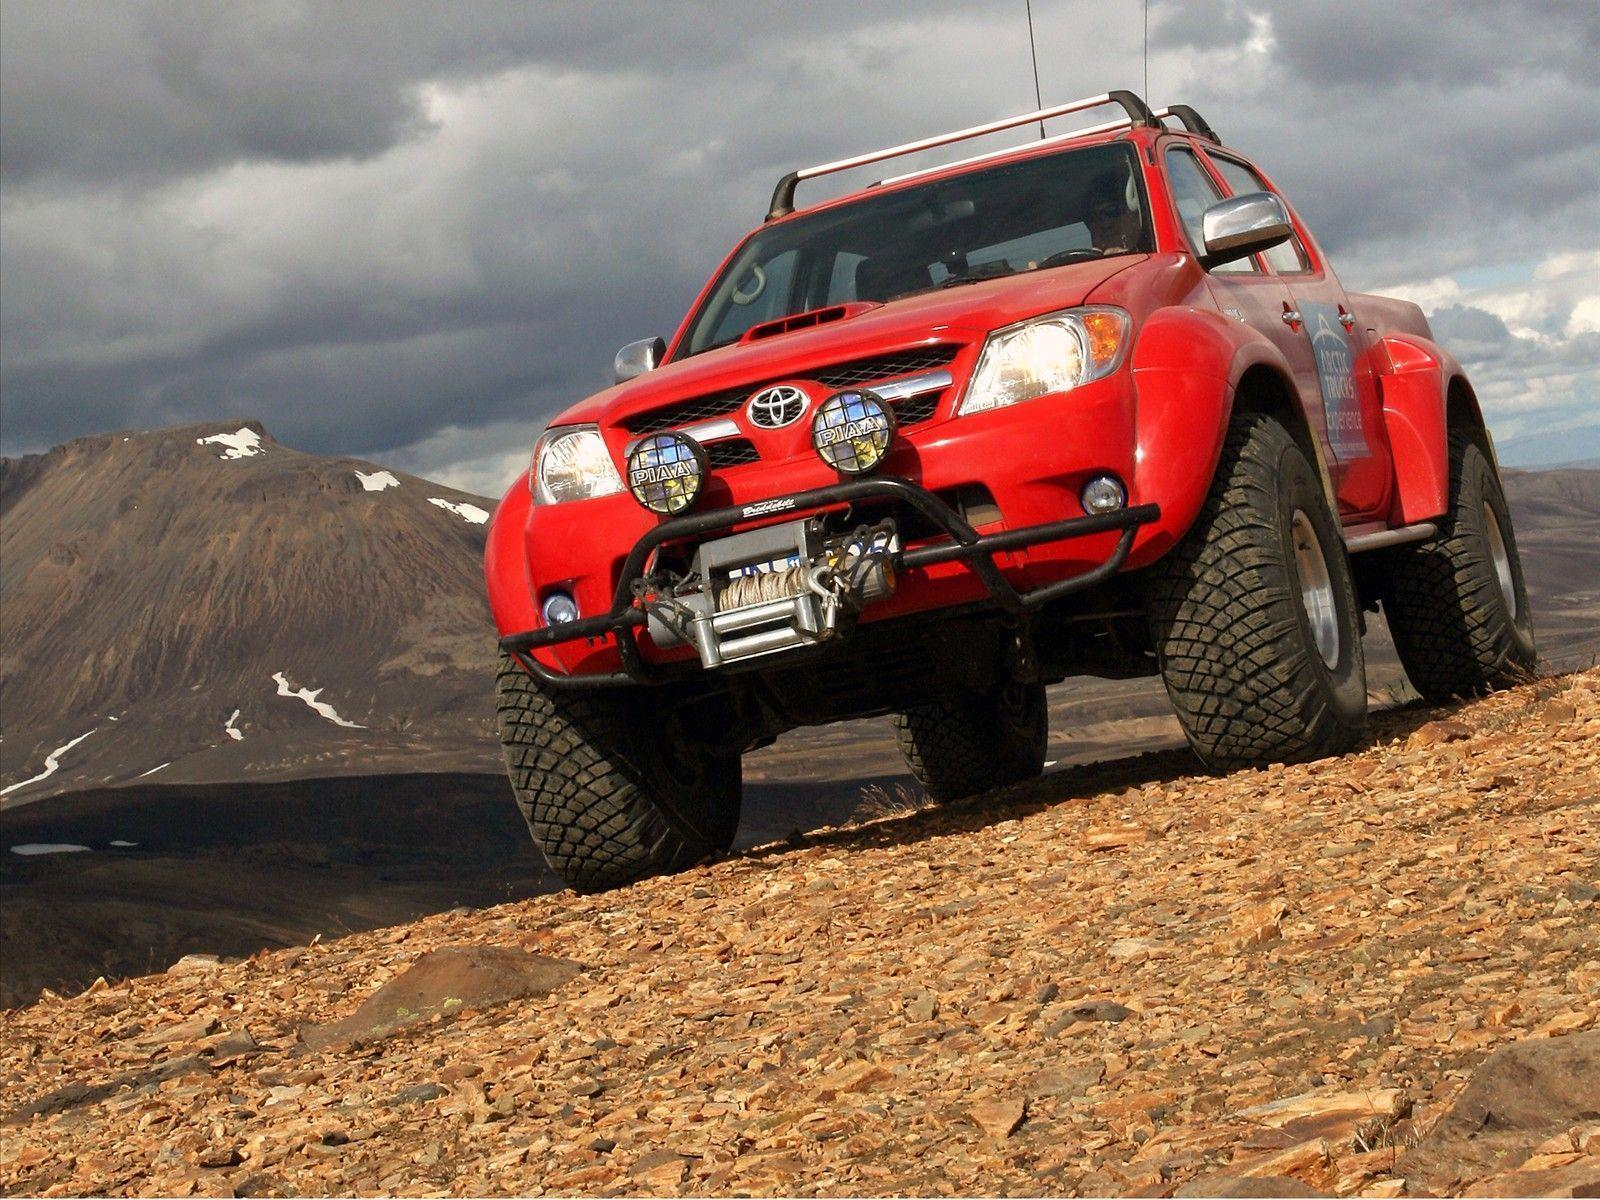 2010 Toyota Hilux Wallpapers